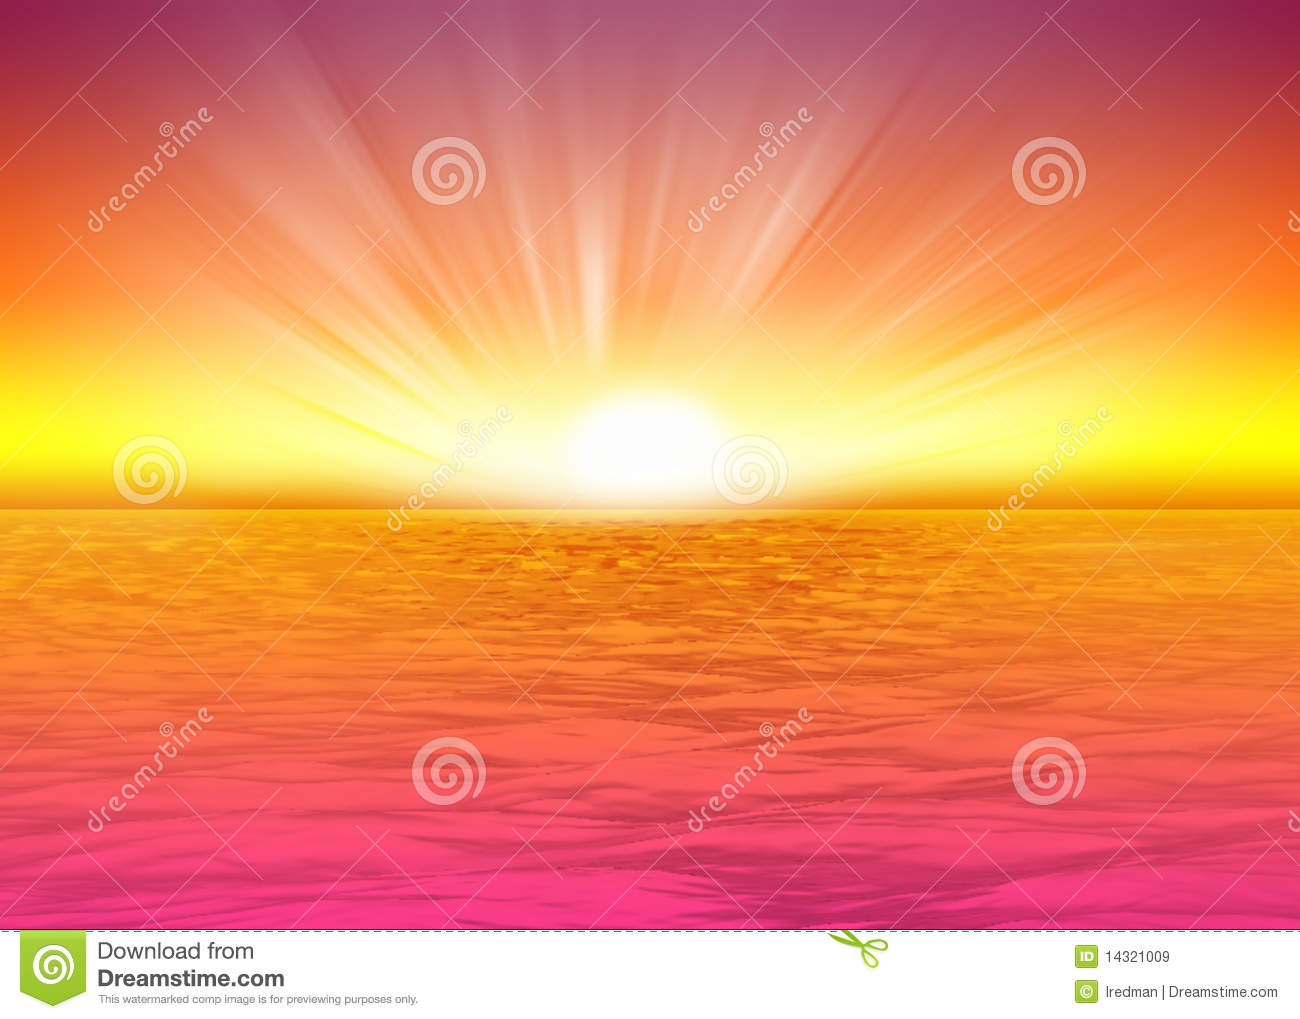 Lion Picture Clipart Beautiful Sea Background Rising Sun Royalty Free Stock